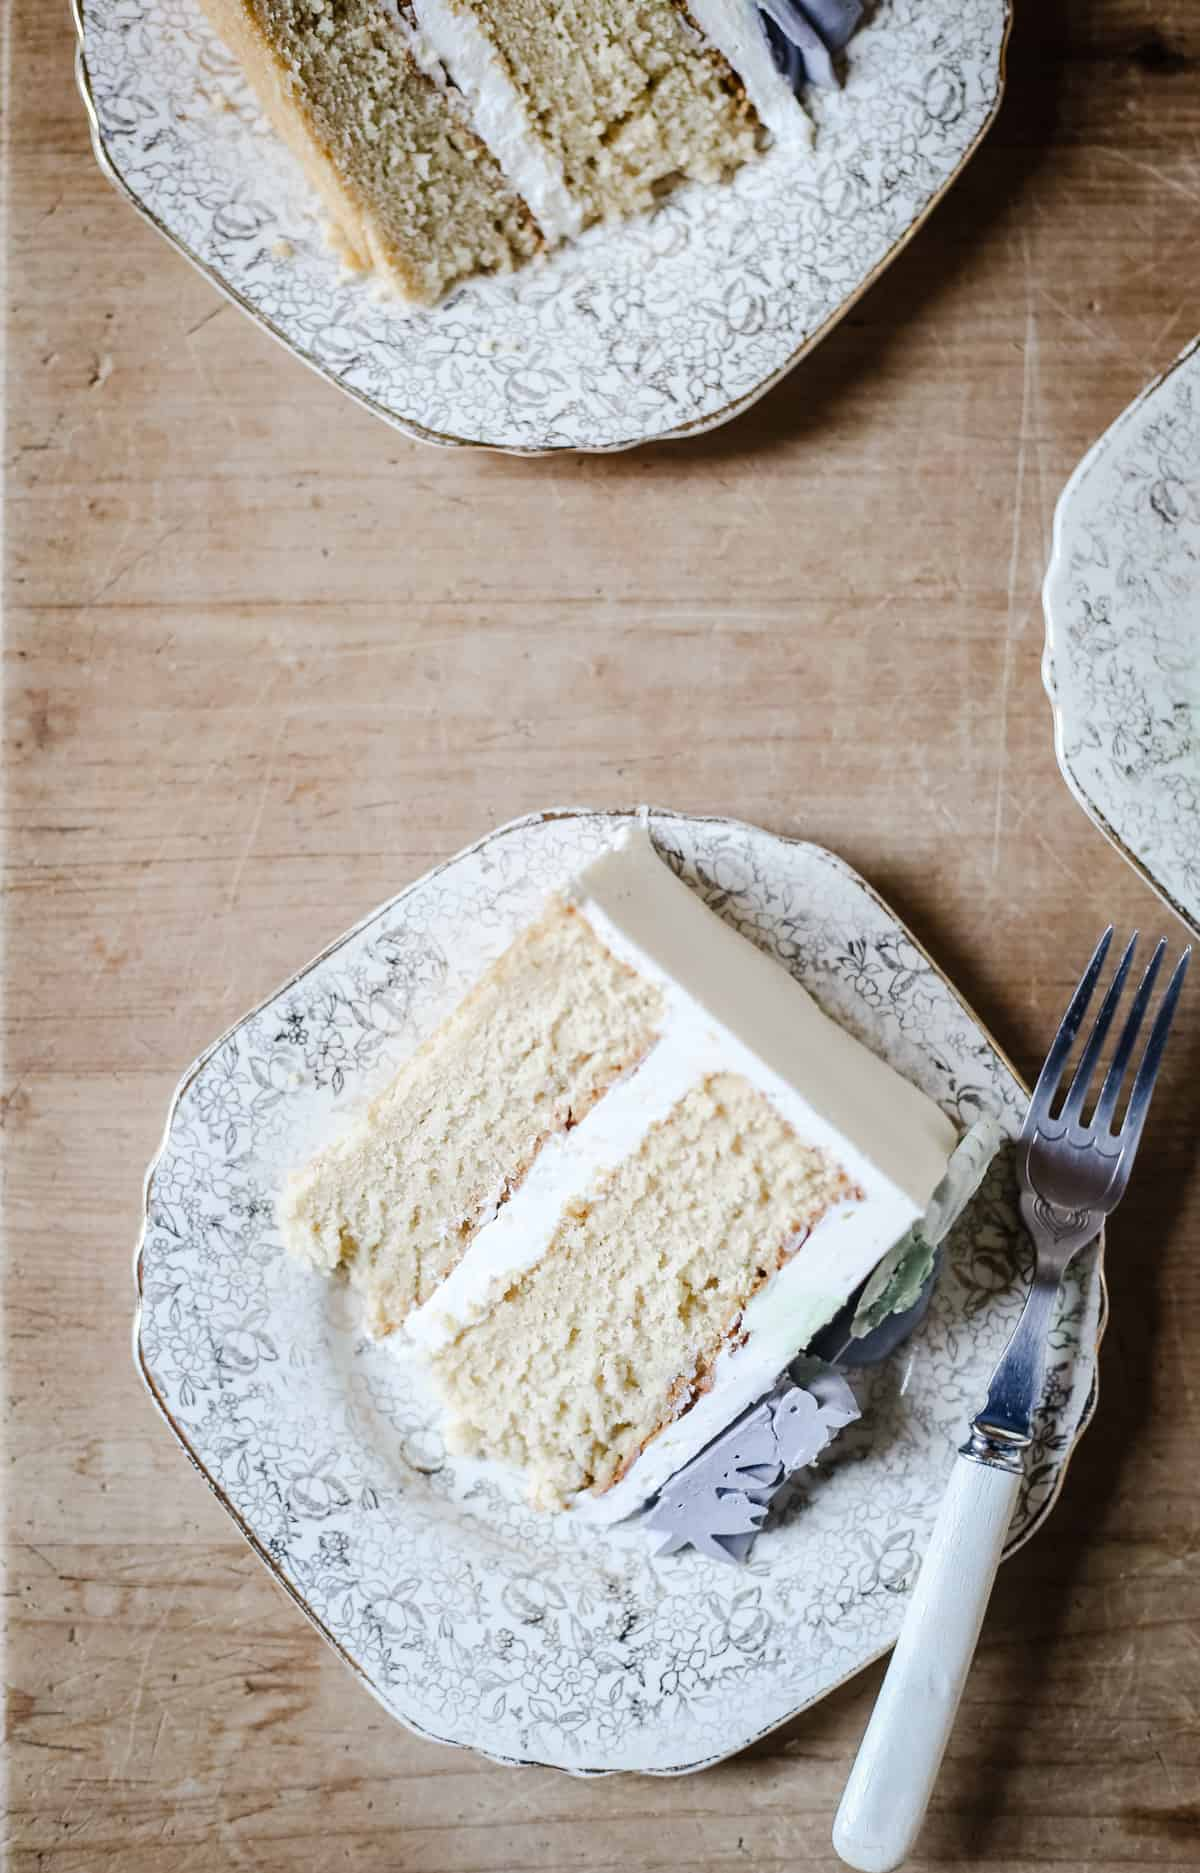 slices of Best Gluten-Free Vanilla Cake on a wooden table